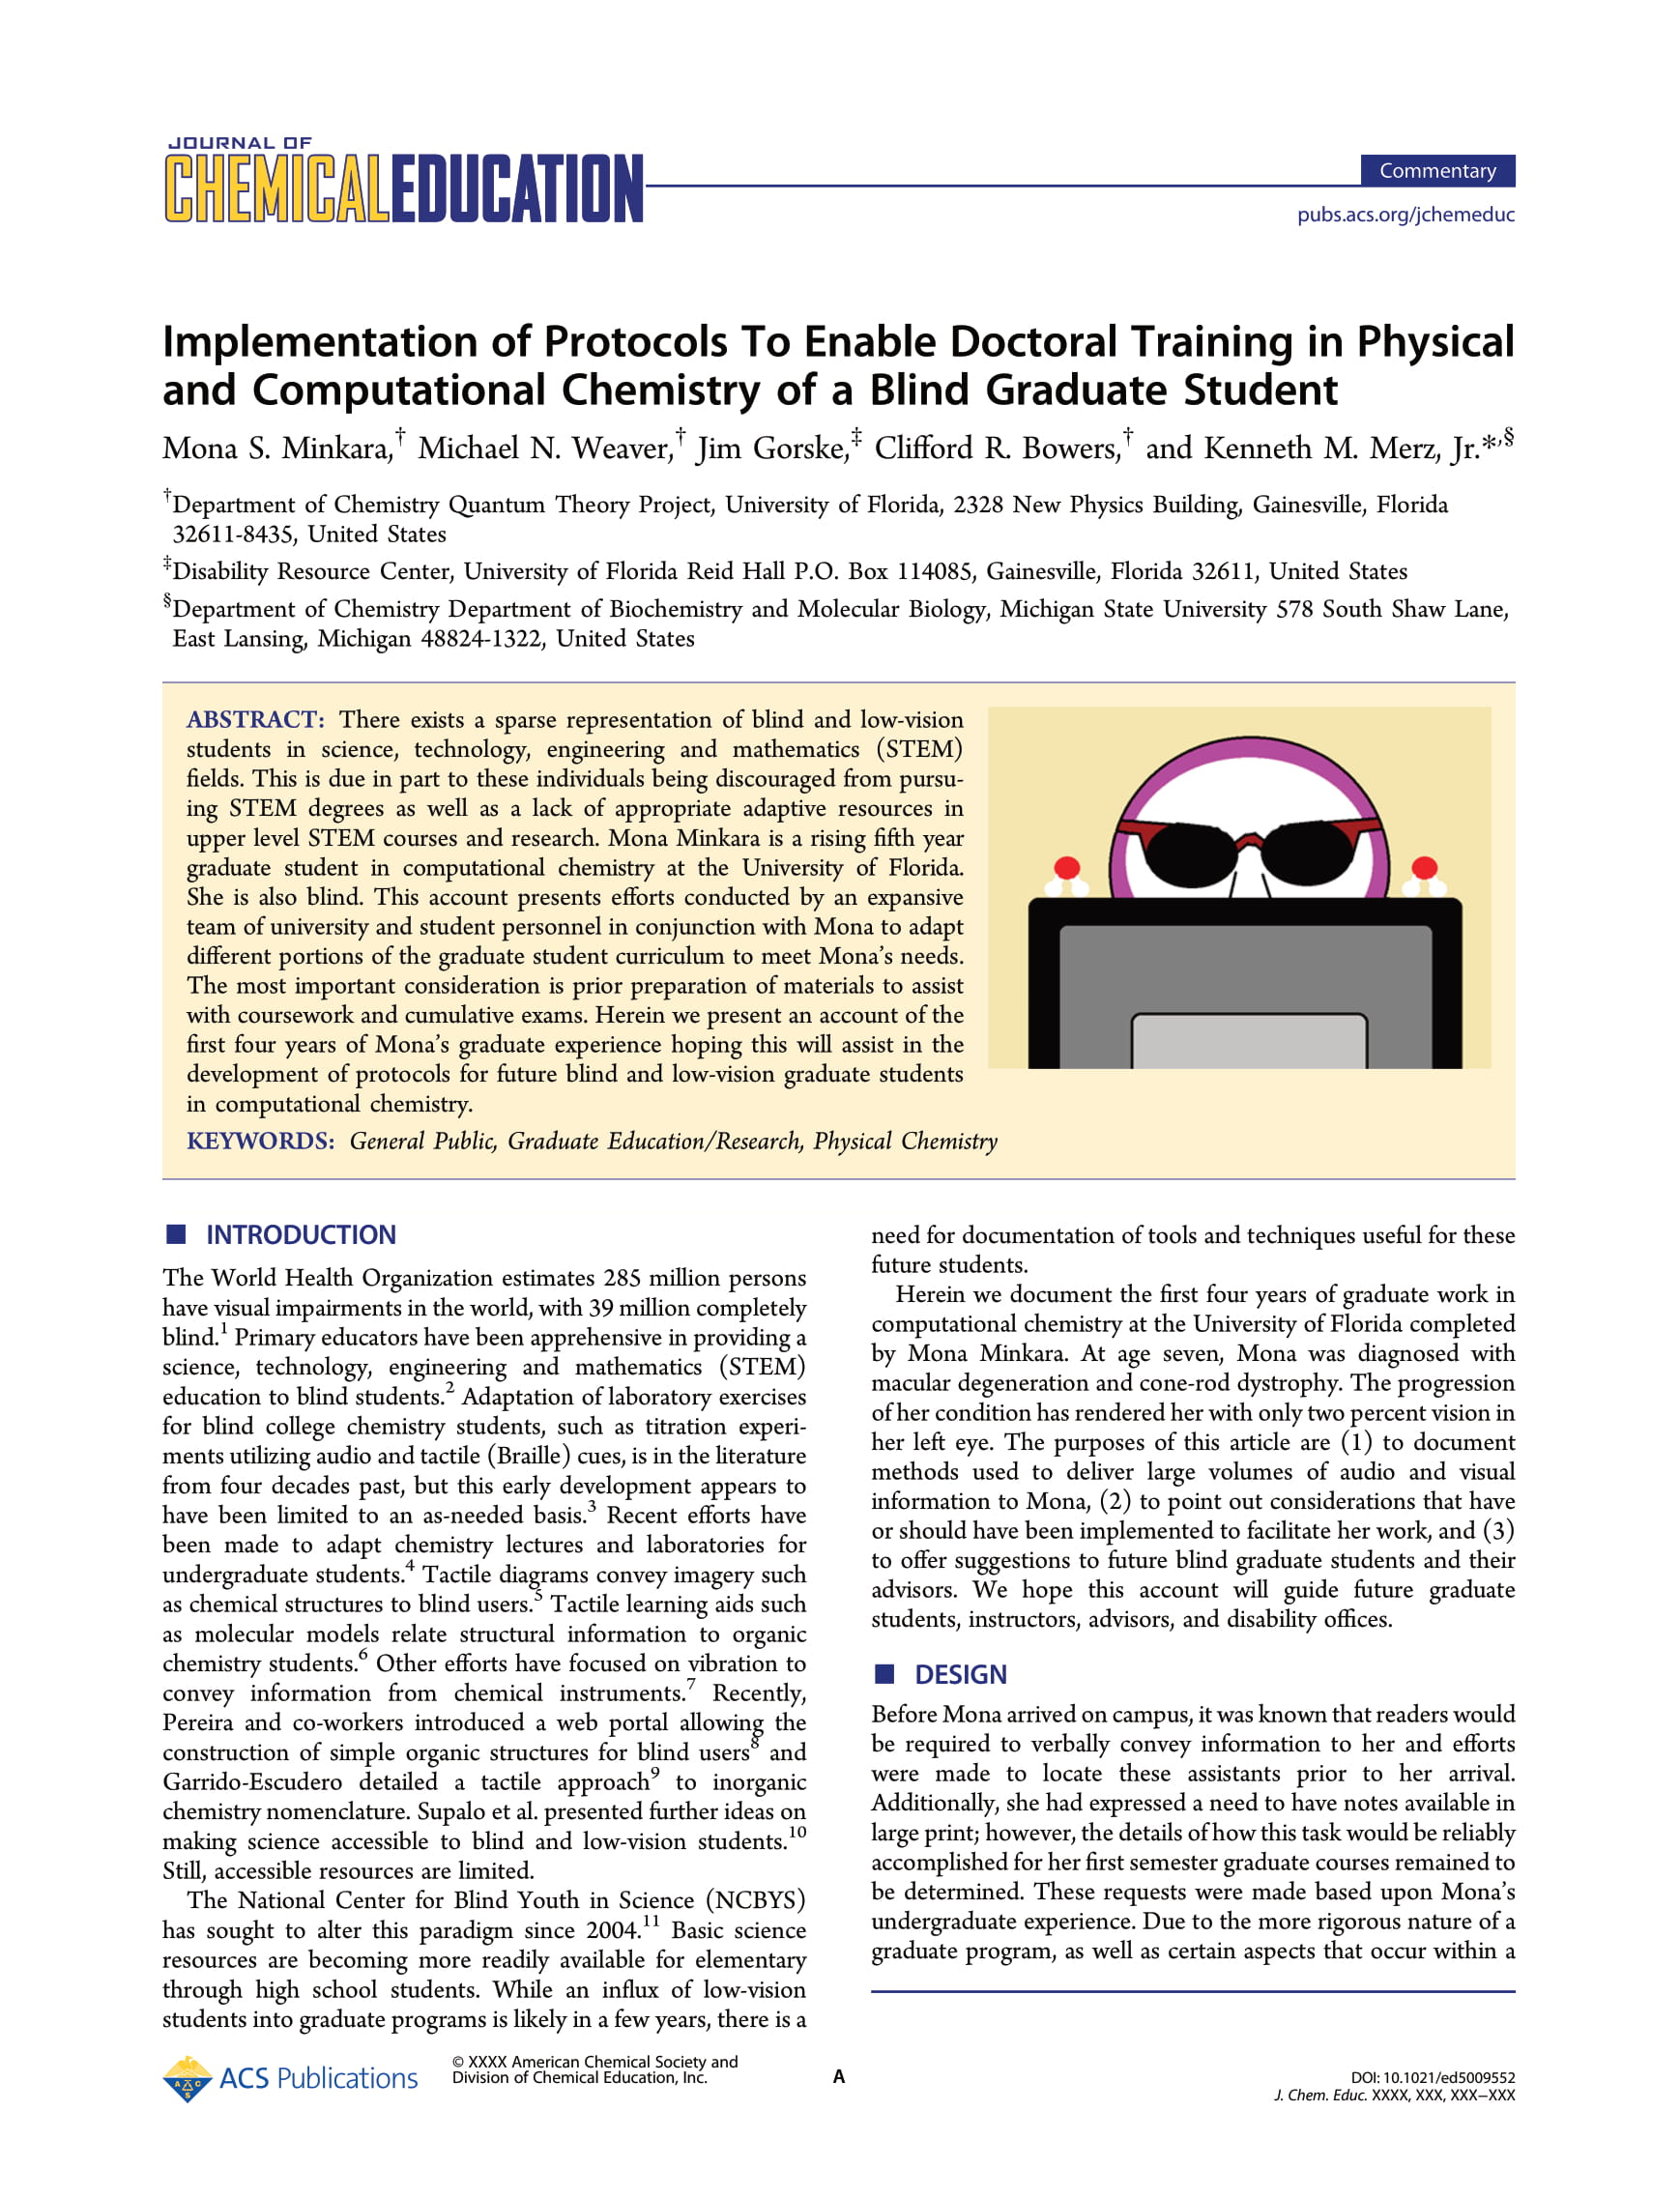 Implementation of Protocols to Enable Doctoral Training in Physical and Computational Chemistry of a Blind Graduate Student